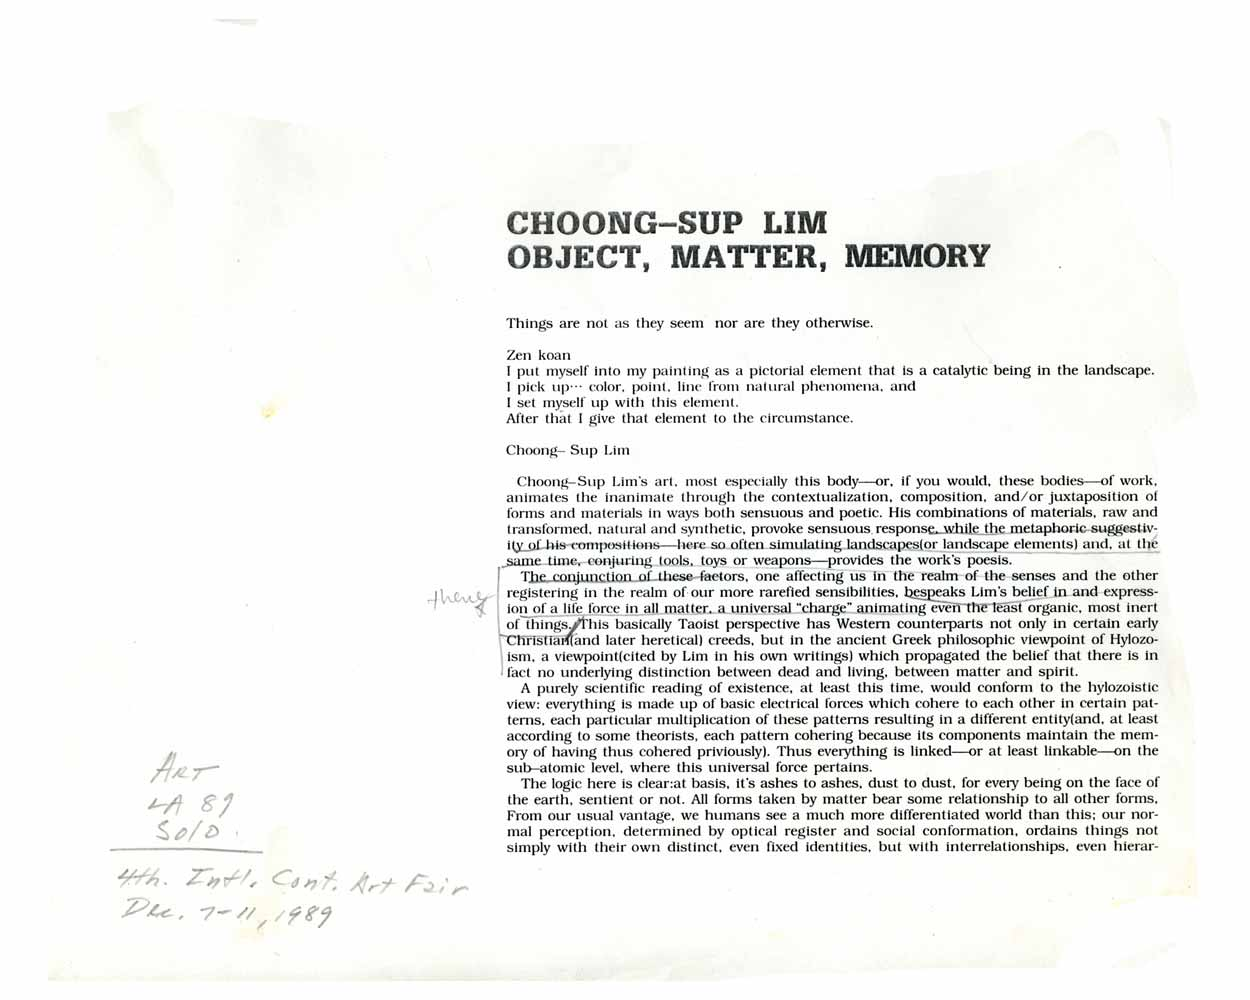 lim choong sup selected document a digital object matter memory essay pg 1